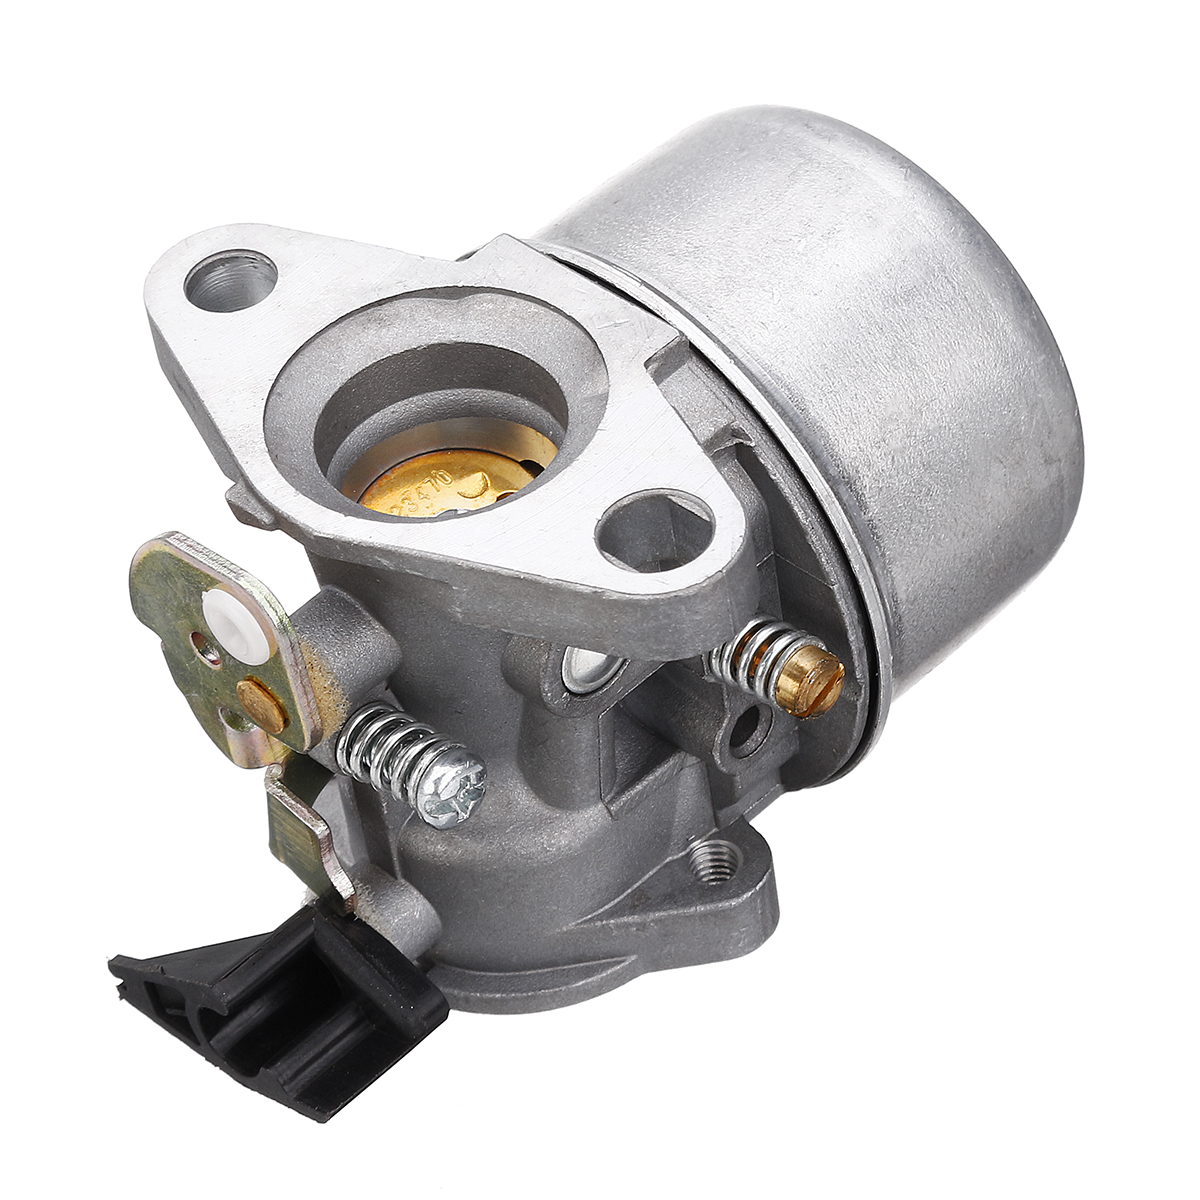 1 Pcs Choke Vergaser carburateur carburetor Briggs Stratton Quantum Motor  498965 with Gasket and Rubber Ring